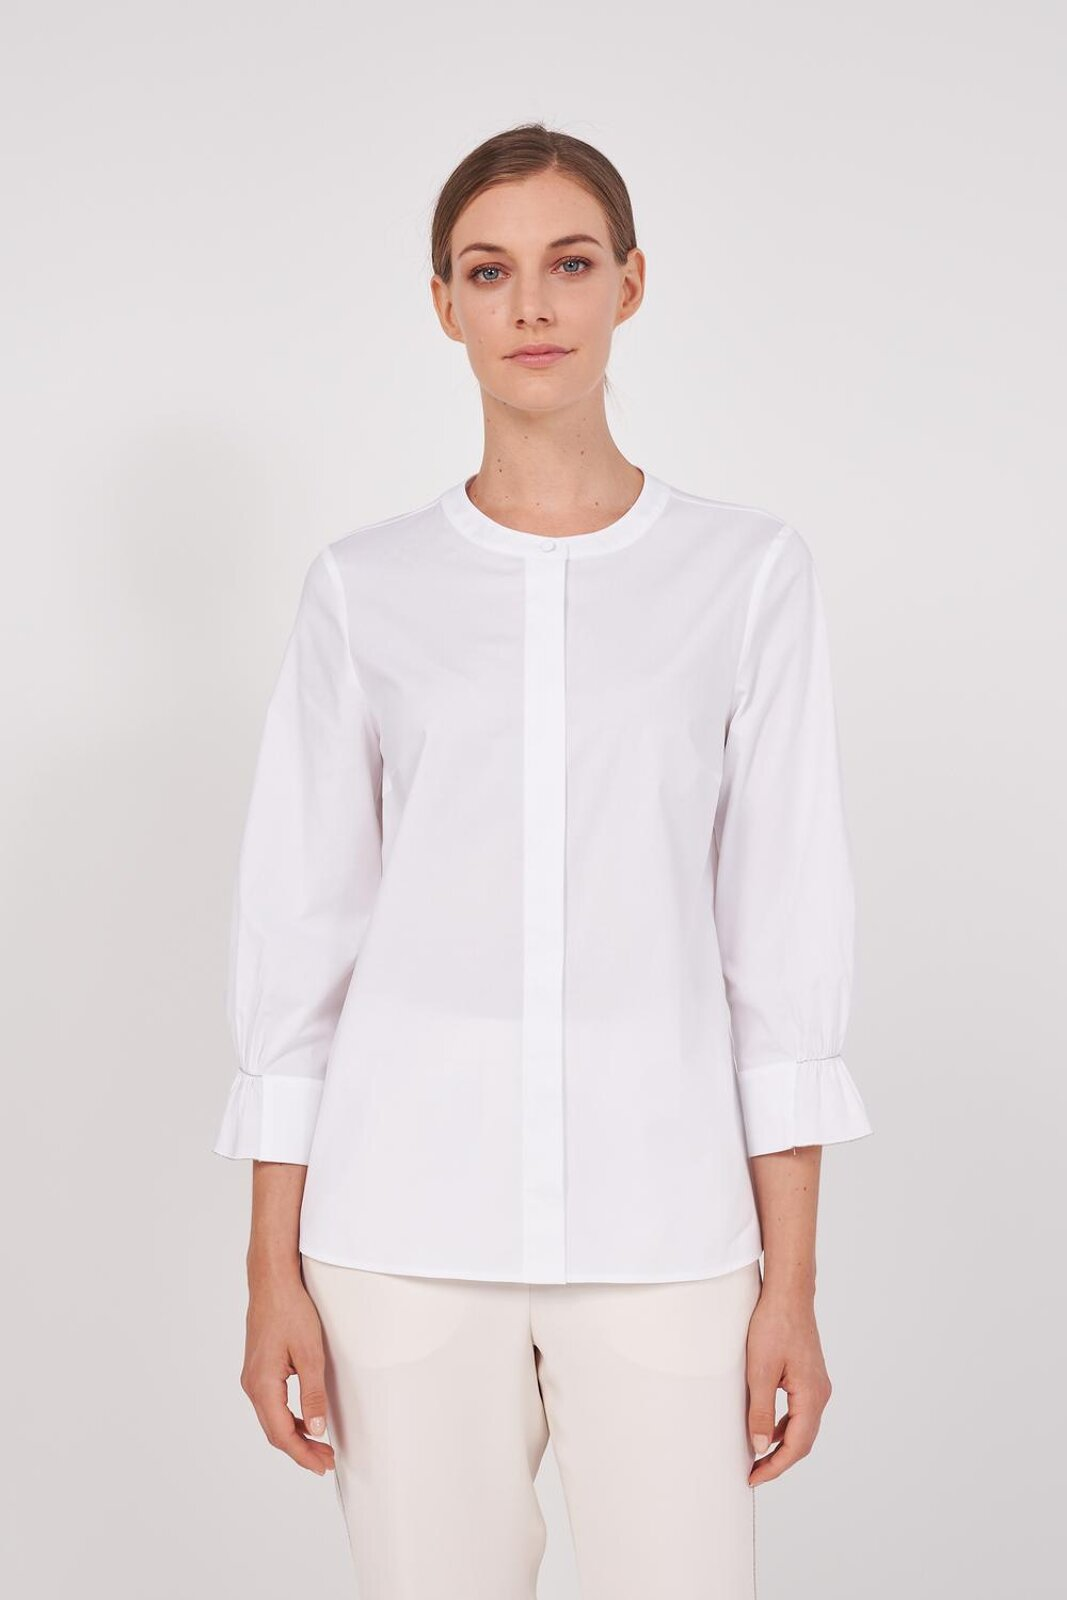 Pure Cotton Slightly Stretch Long Sleeve Shirt. Round neckline, slightly puffed sleeves with metal details on the cuffs, front closure with hidden buttons. Regular fit. - Peserico